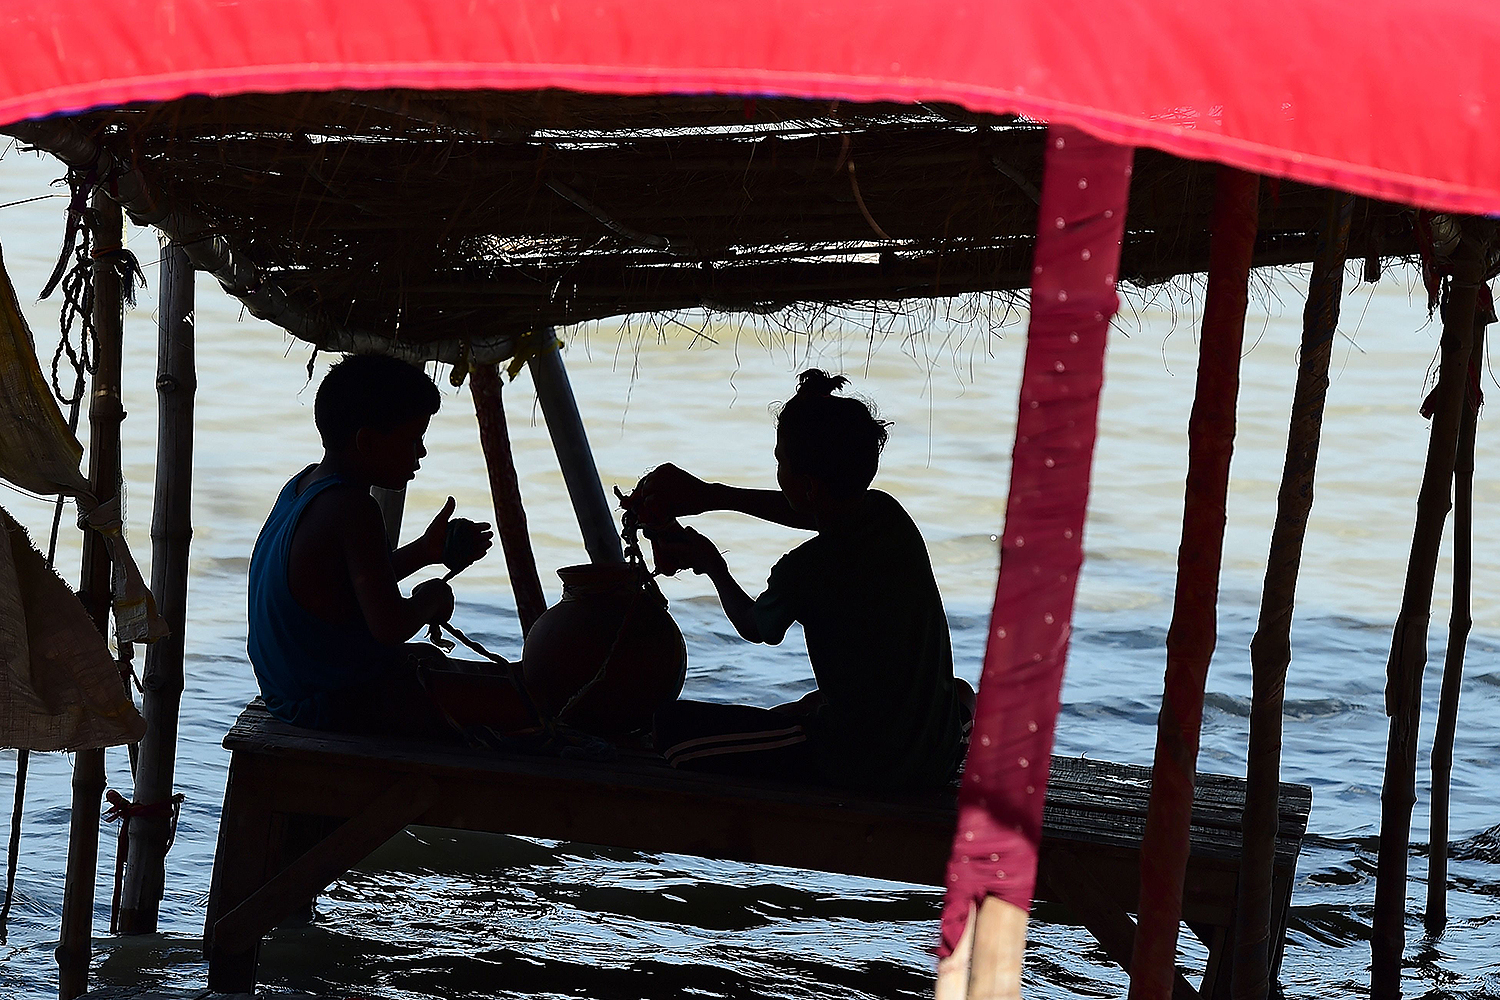 Children sit under the shade of a partially submerged hut as the water level of the Ganges and Yamuna rivers rises in Allahabad, India, on Aug. 25. SANJAY KANOJIA/AFP via Getty Images